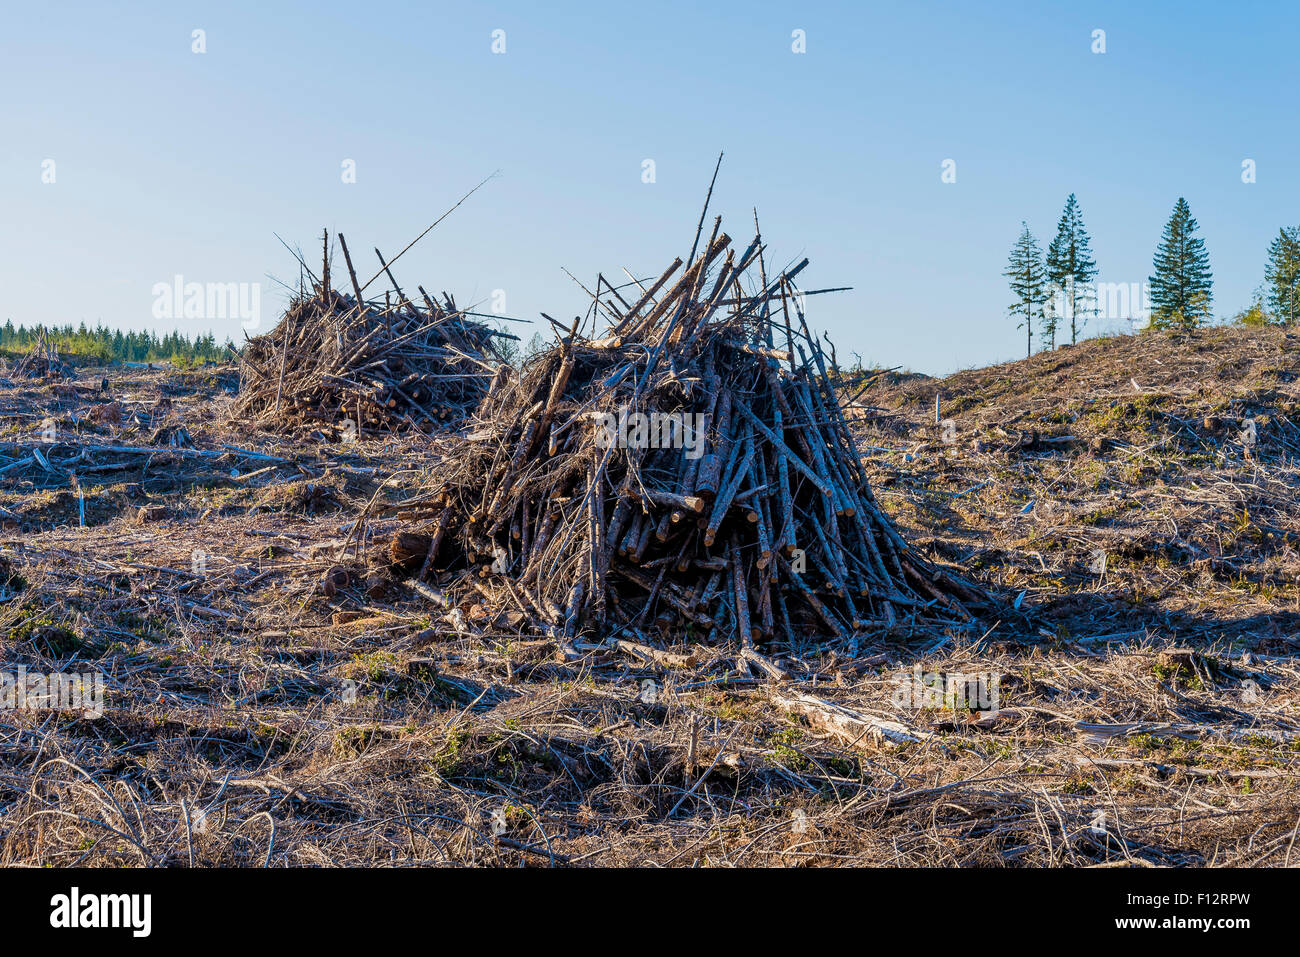 Logging slash piles ready for burning, Vancouver Island, British Columbia, Canada - Stock Image